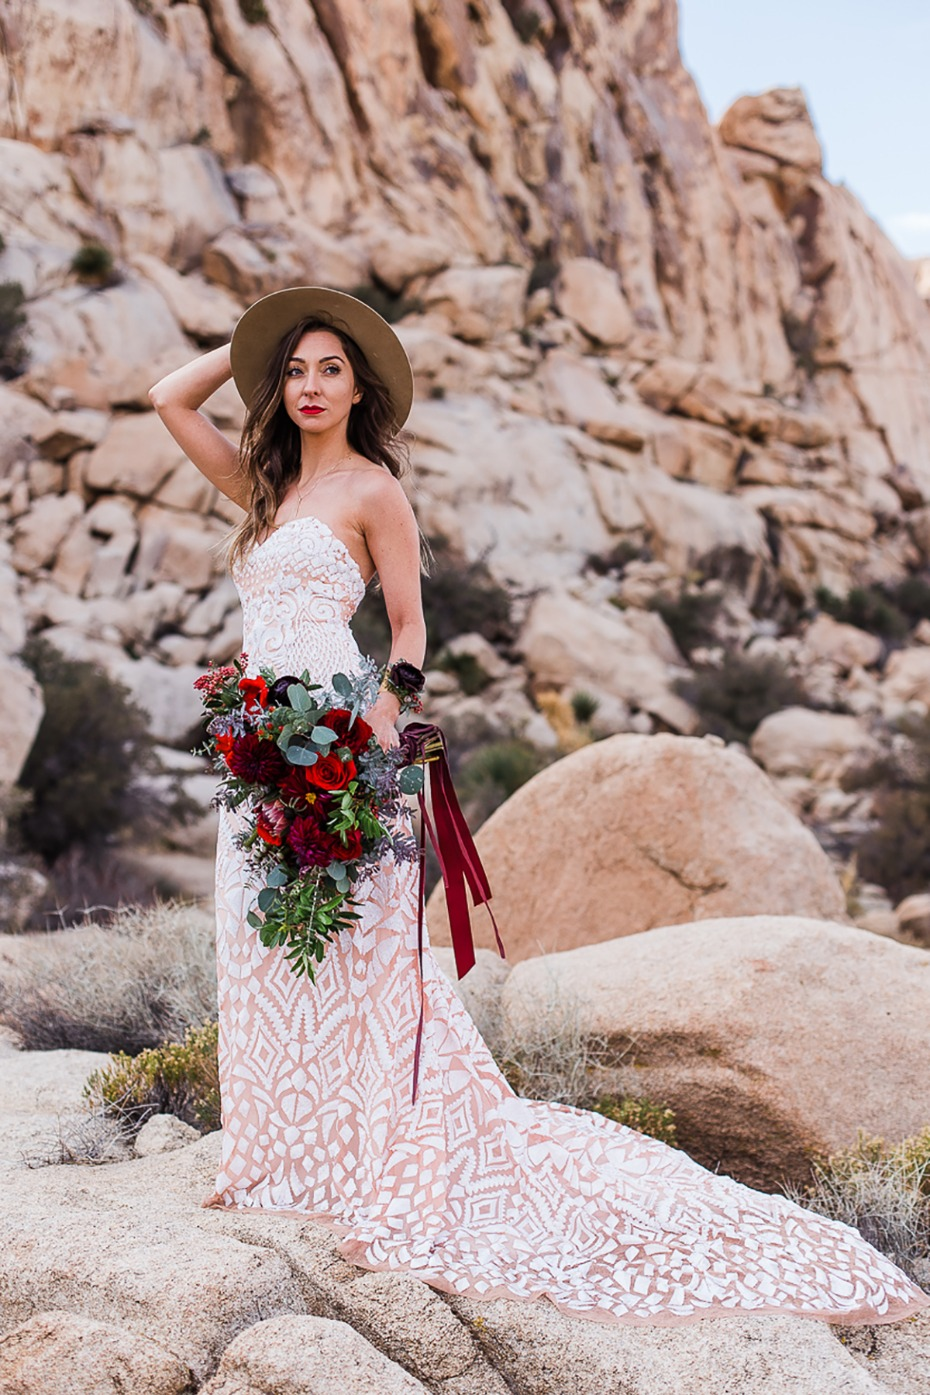 boho bridal style in the desert